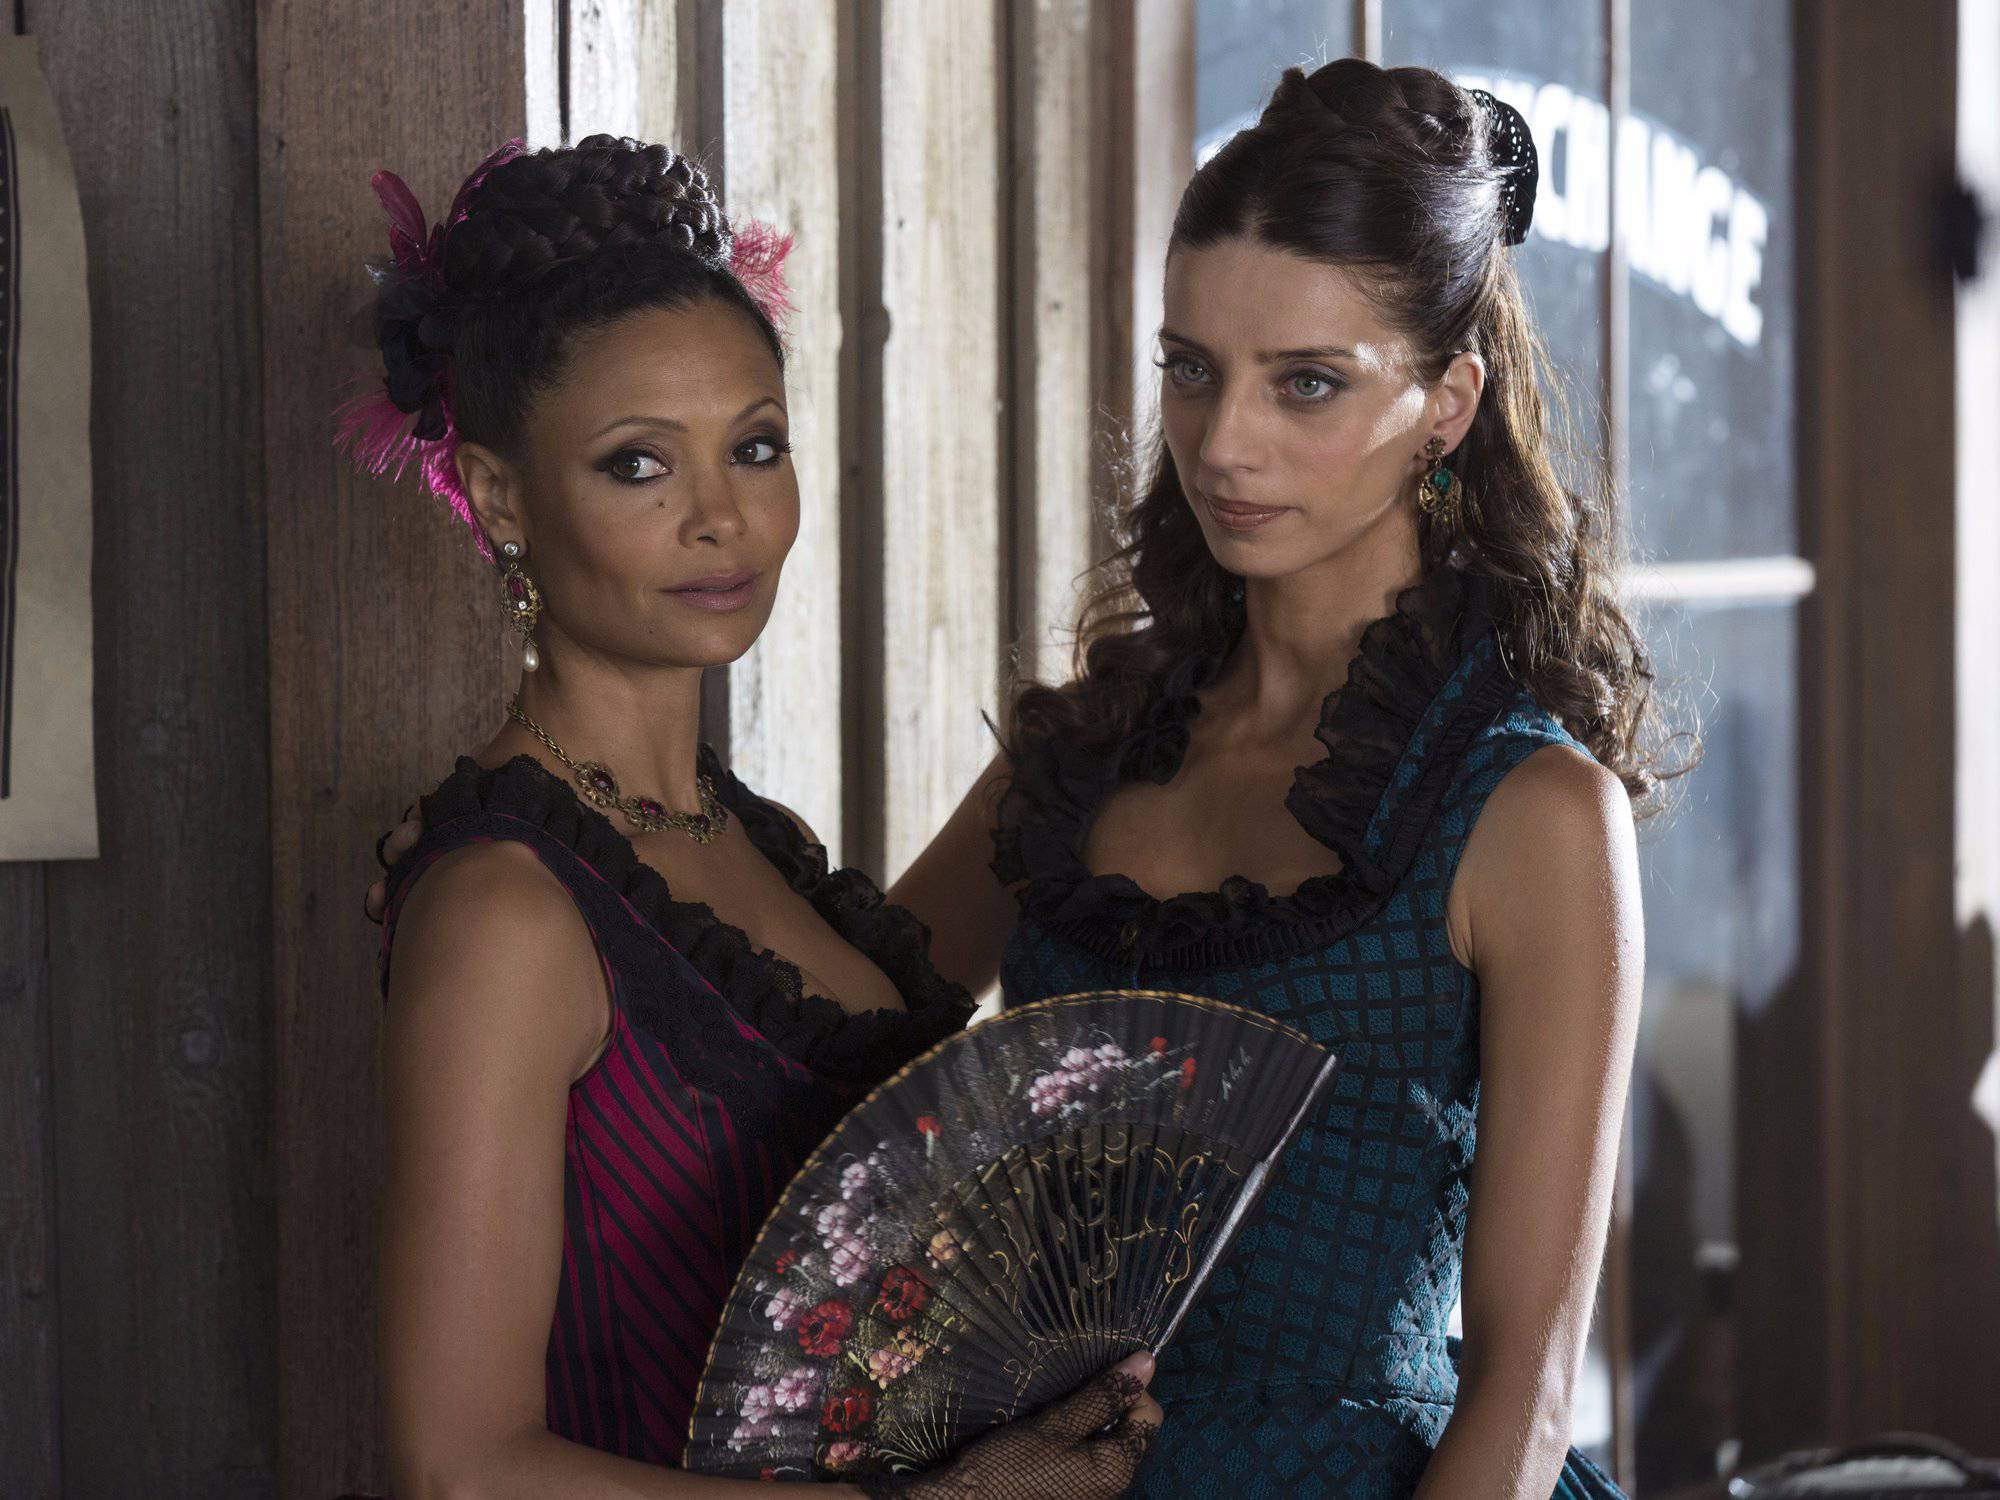 Westworld Star Discusses 'Liberating' Nude Scenes